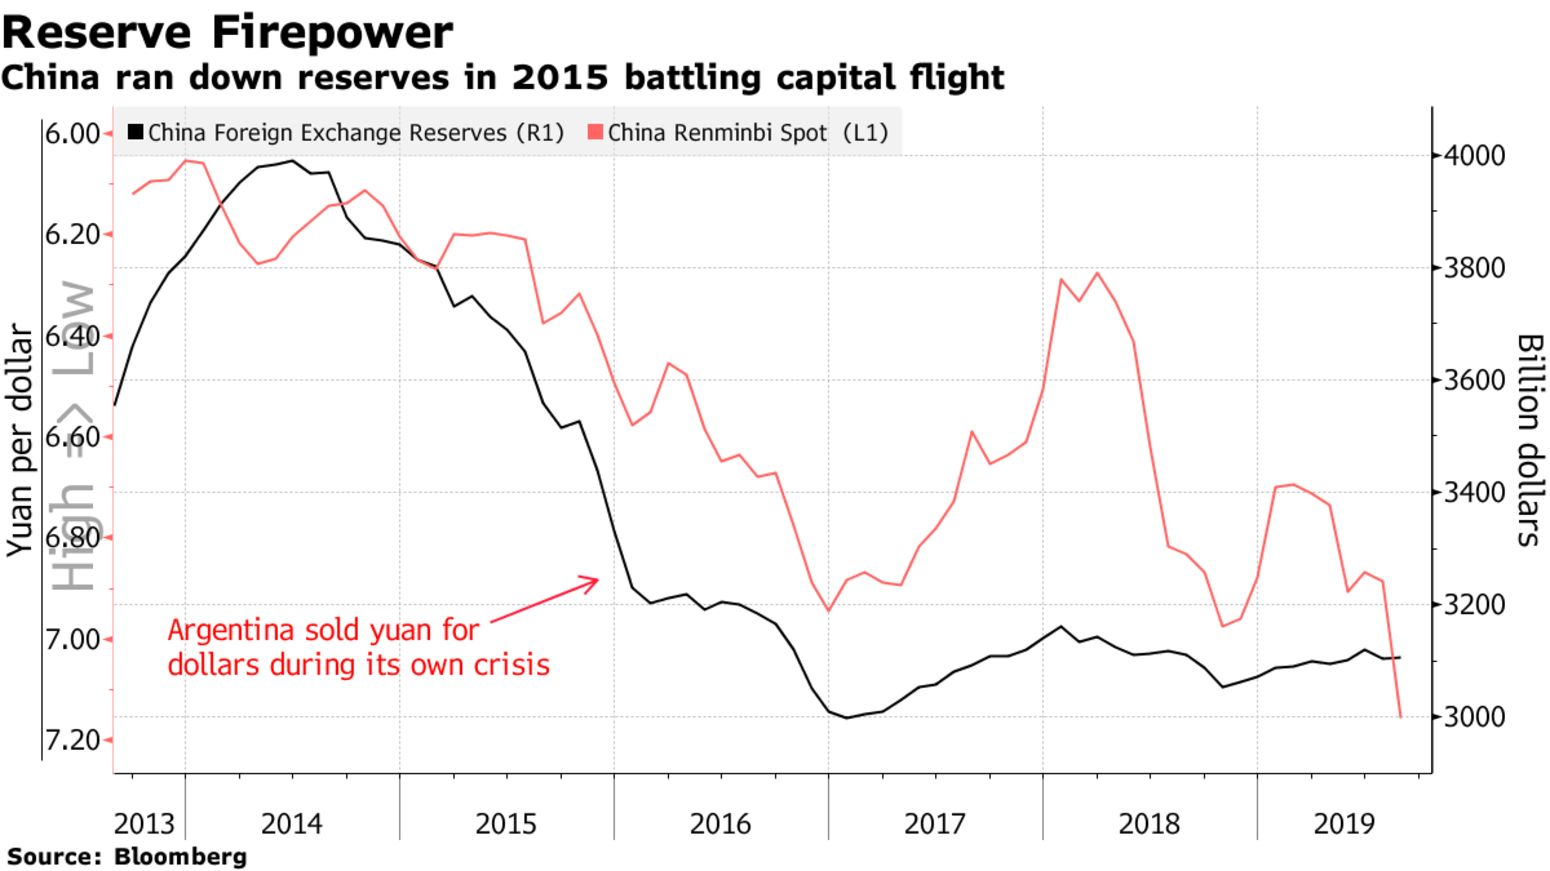 China ran down reserves in 2015 battling capital flight